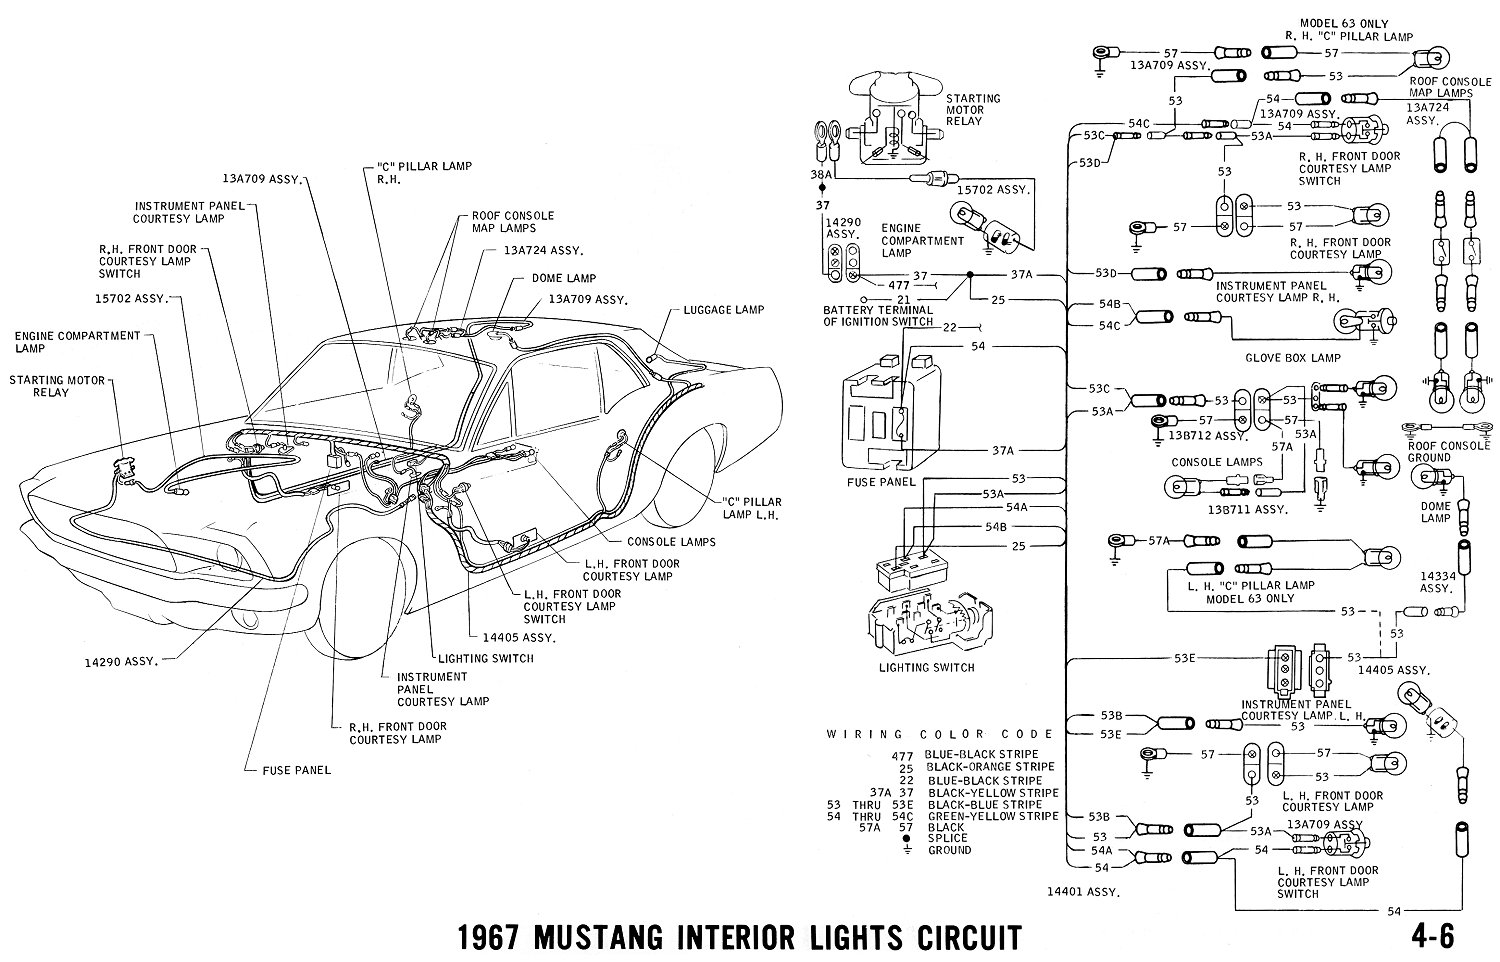 hight resolution of 1967 cougar fuse diagram wiring diagram imp 1967 cougar fuse diagram